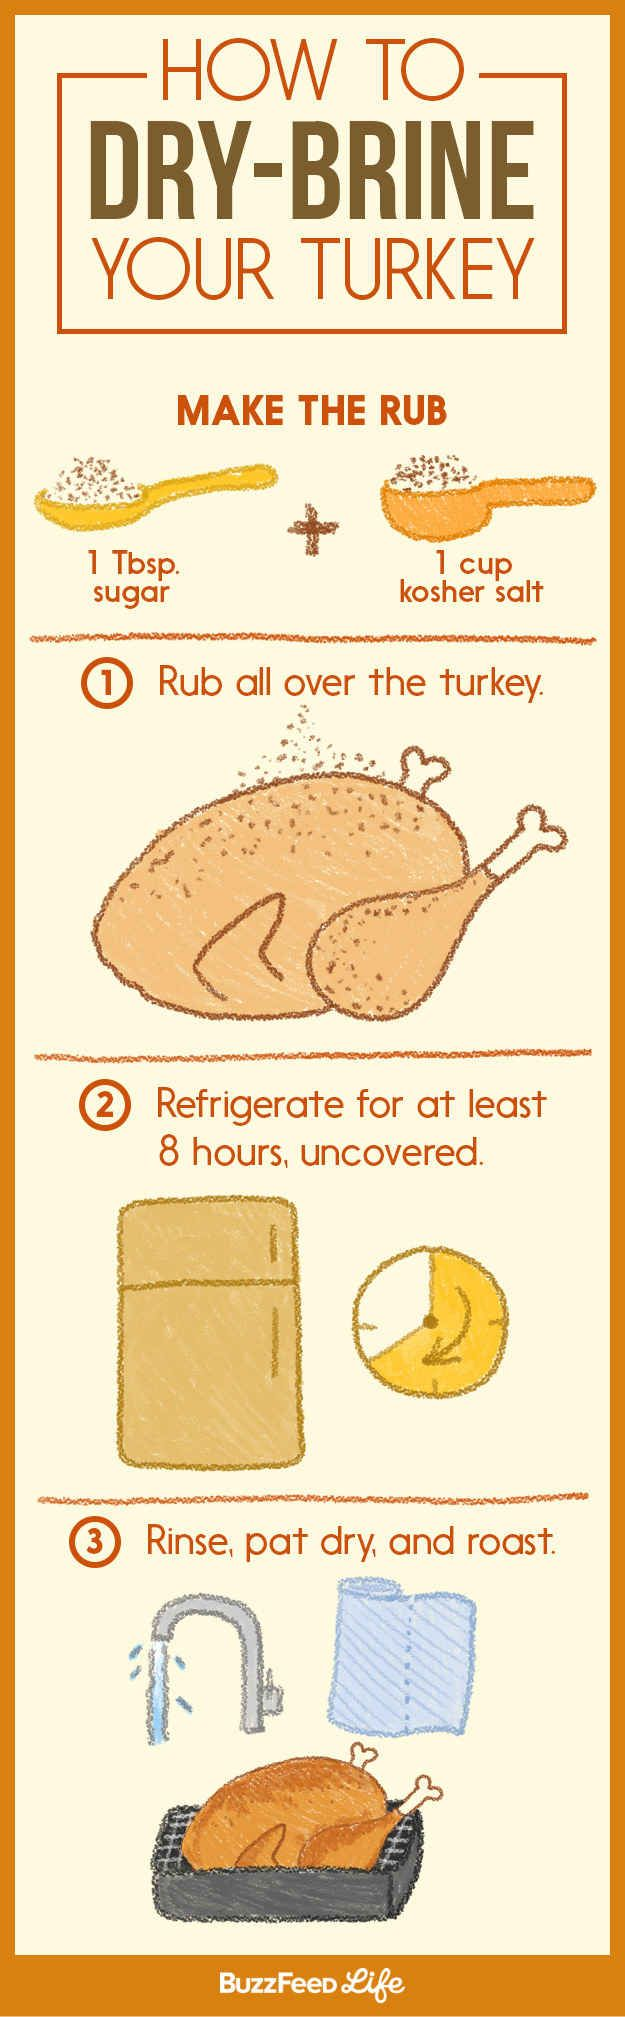 For prepping a turkey: